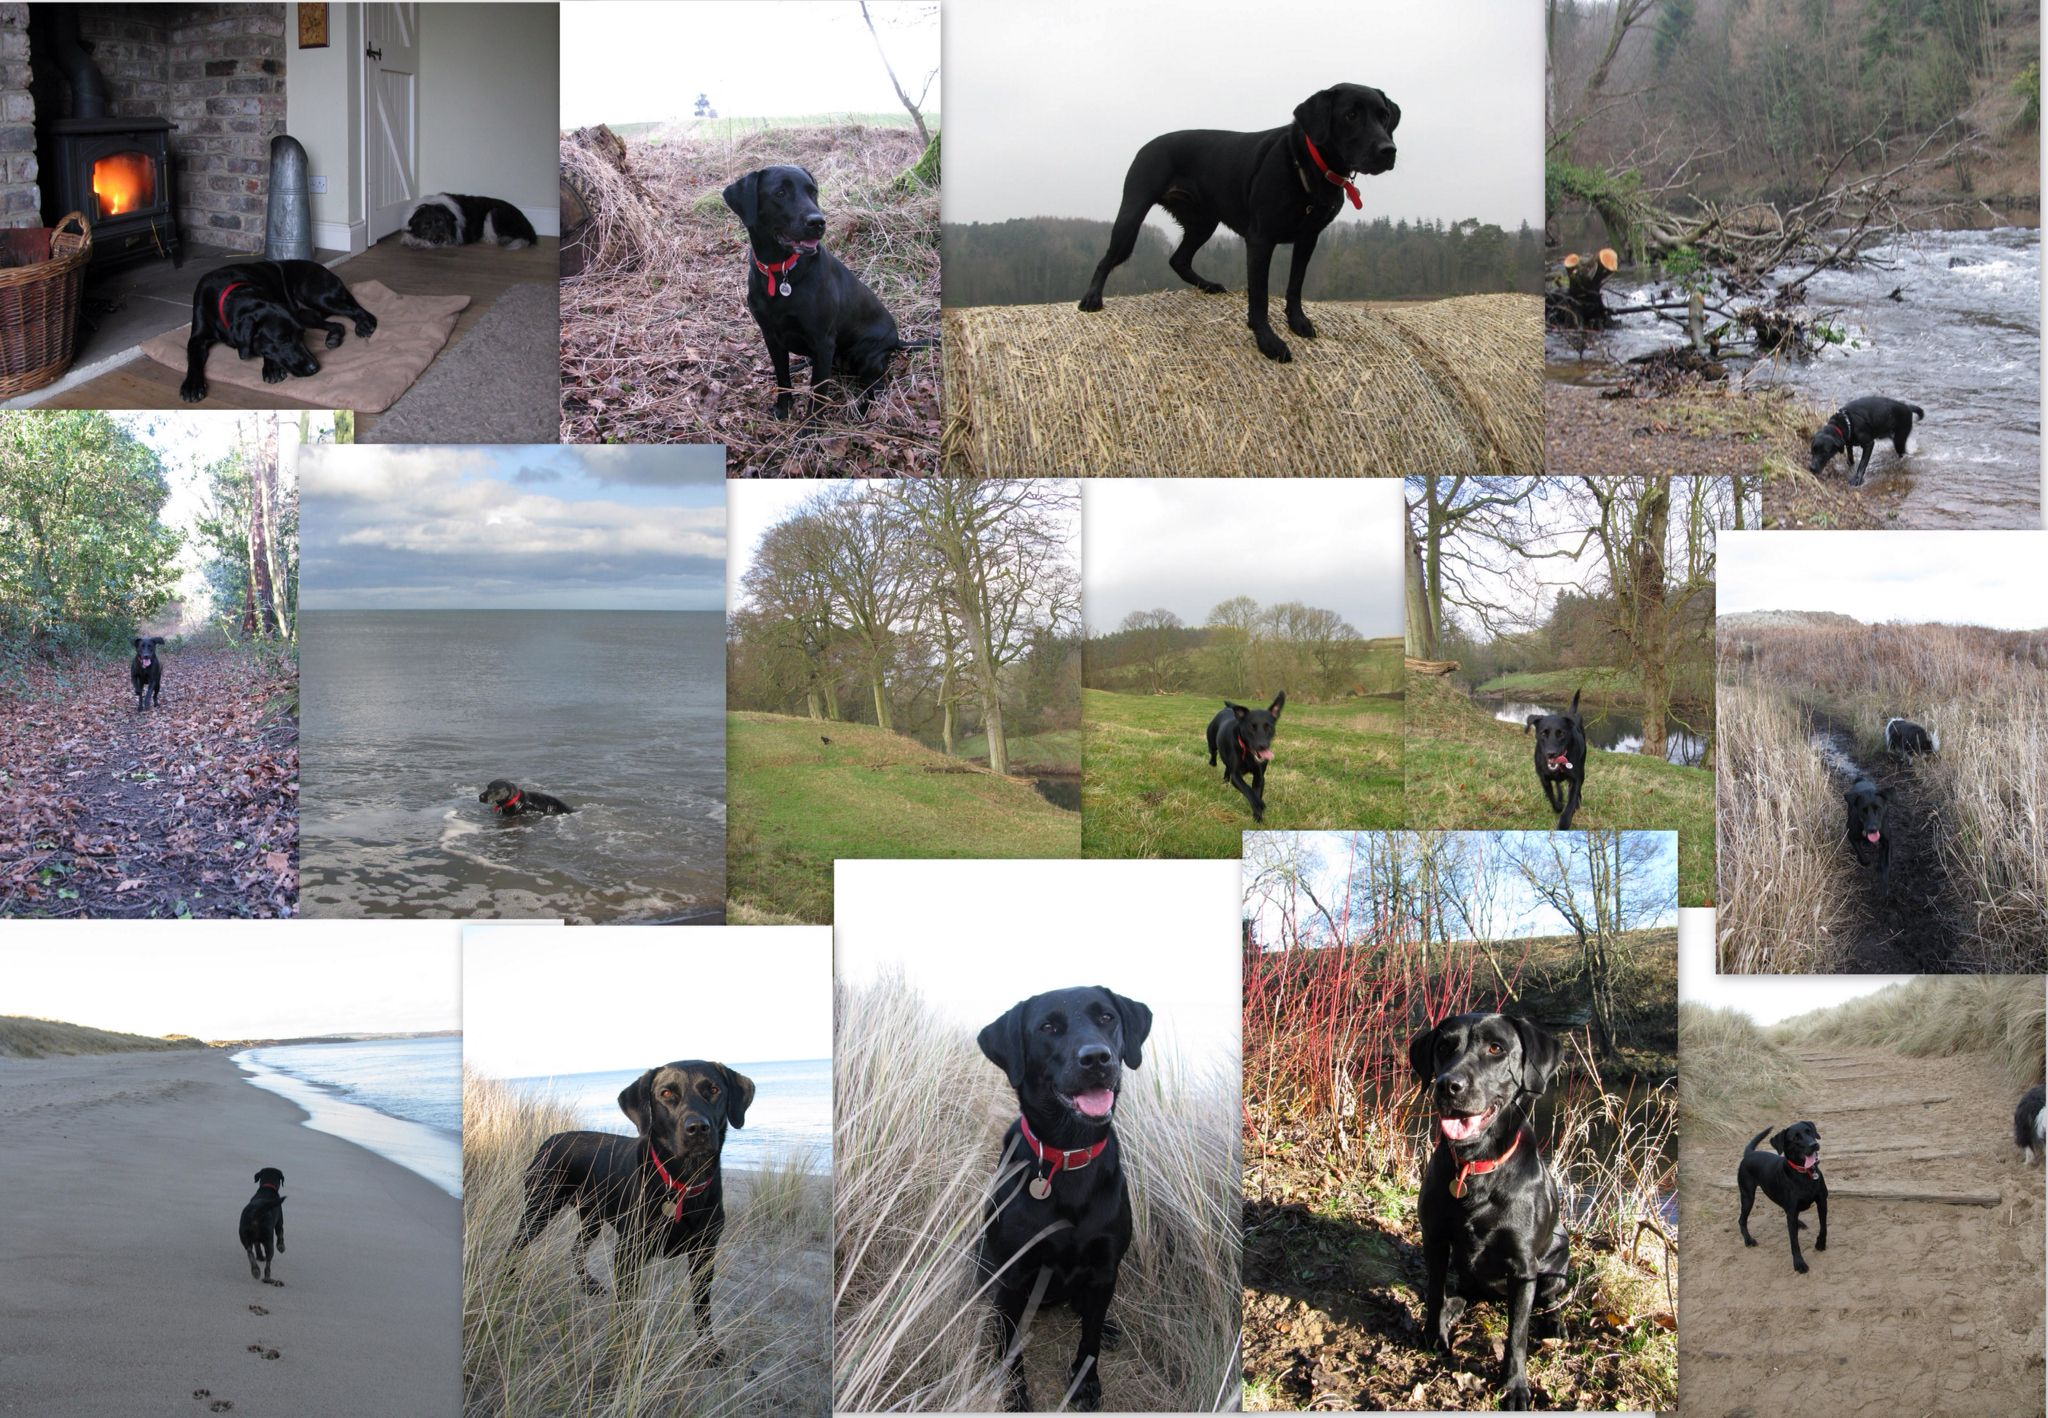 Olive the Labrador enjoying her #BarkingMad holiday. Dogs deserve a holiday too!